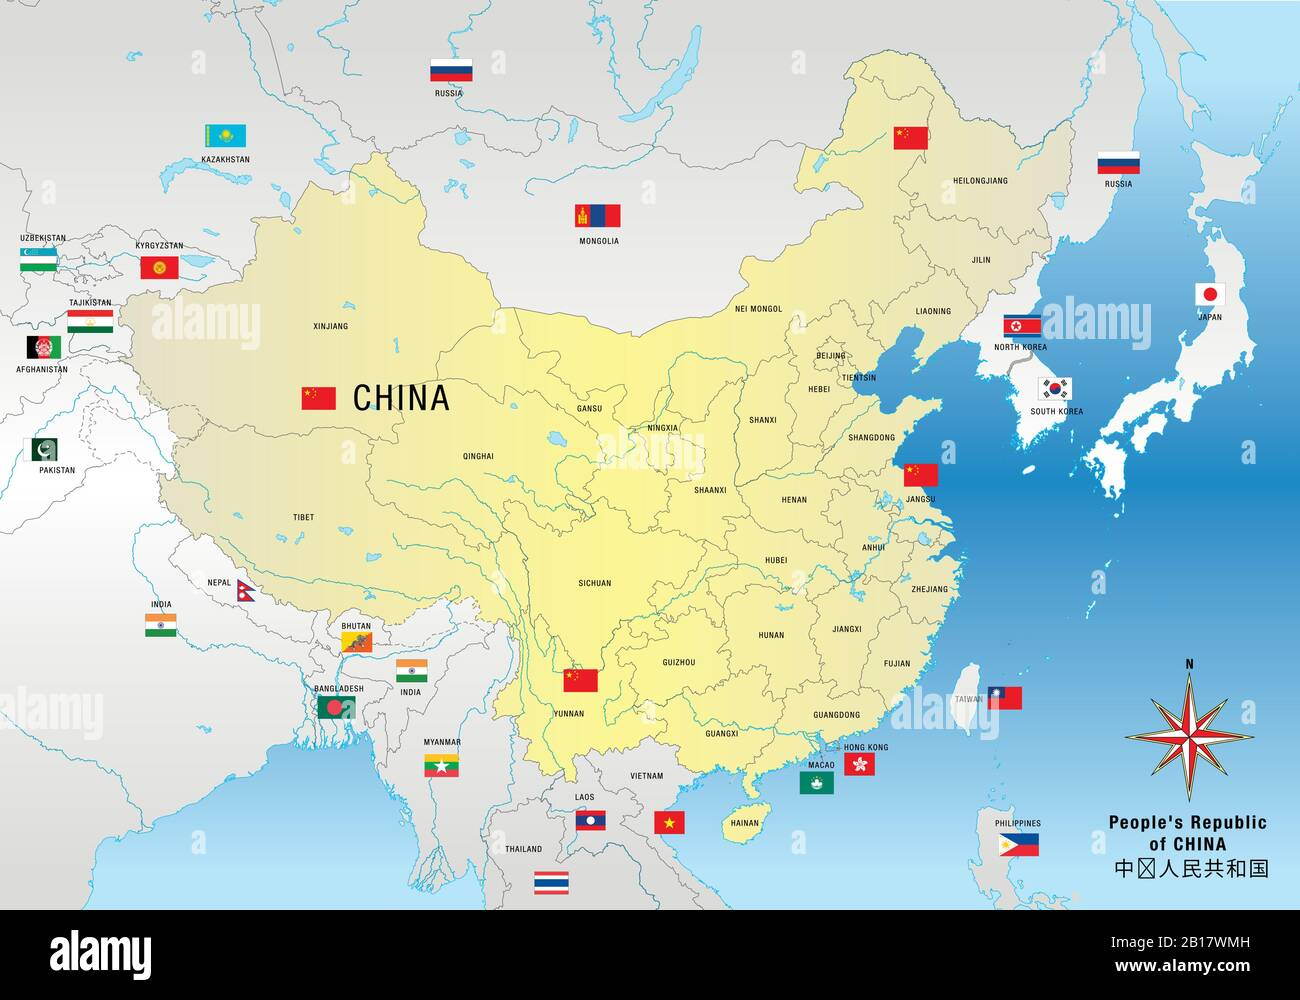 Peoples Republic Of China Map